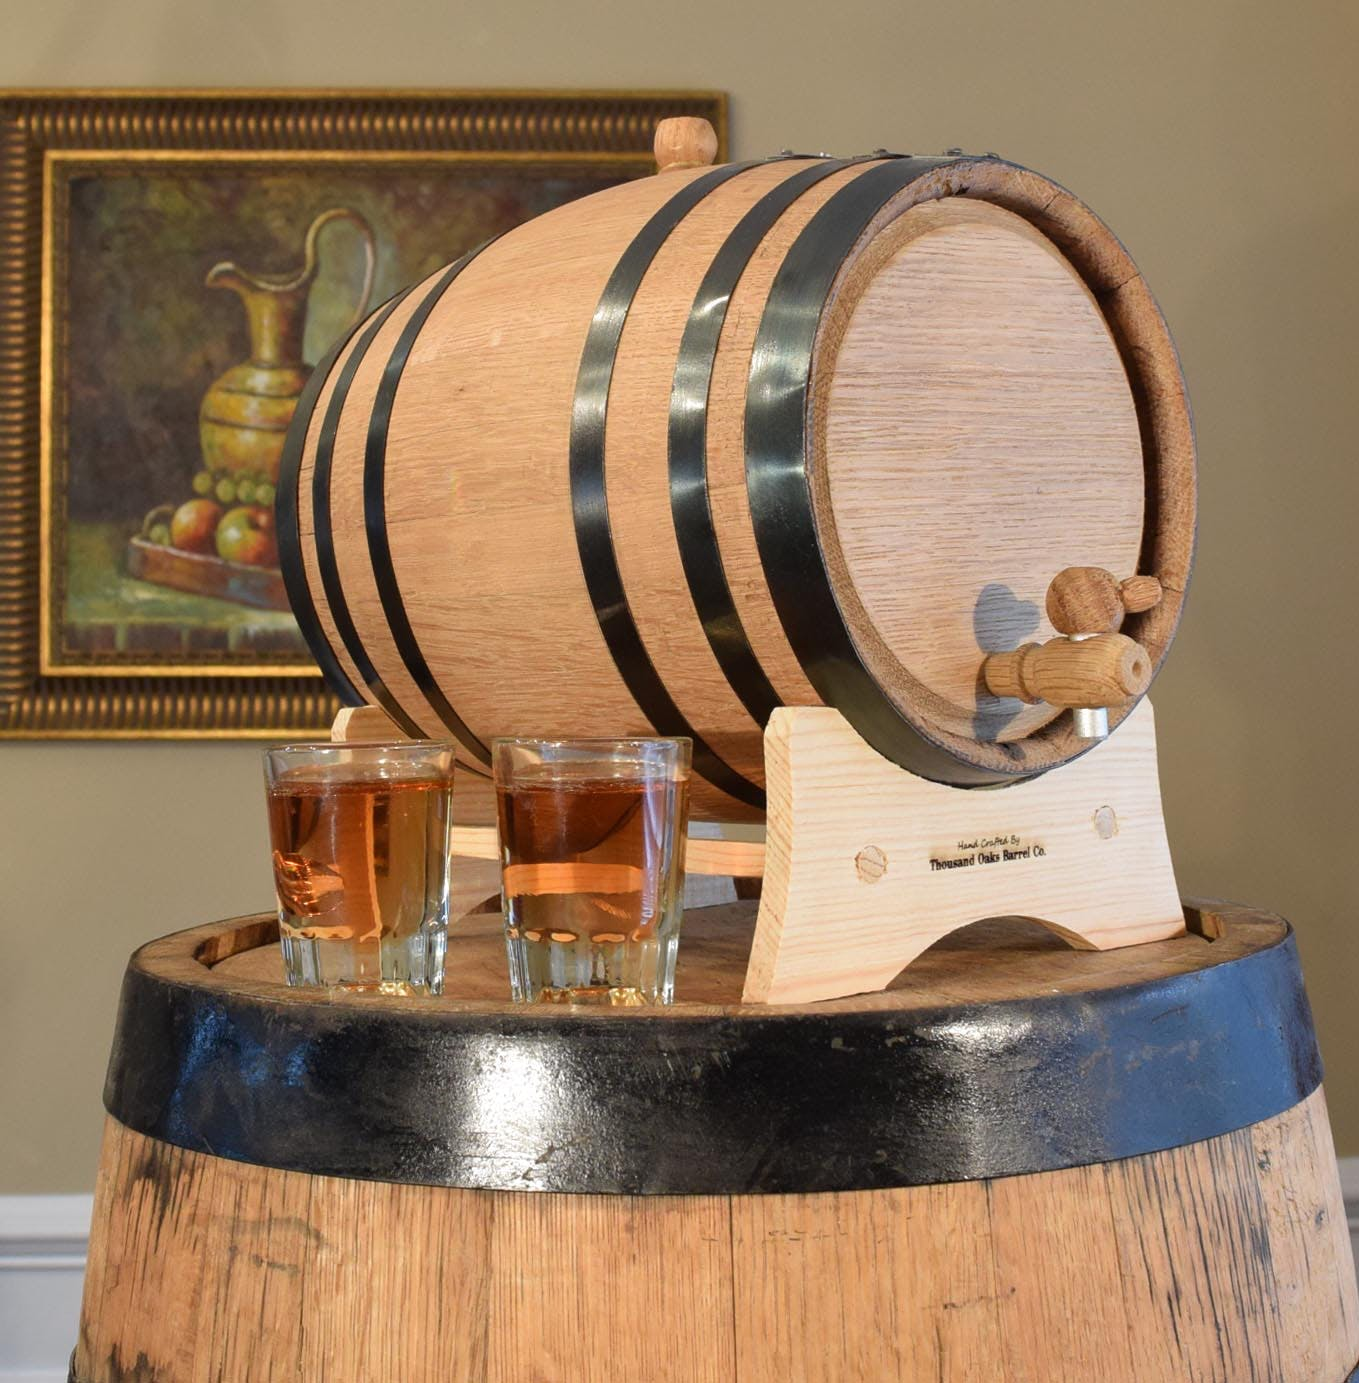 Oak Barrel Whiskey barrel sold by Thousand Oaks Barrel Co.